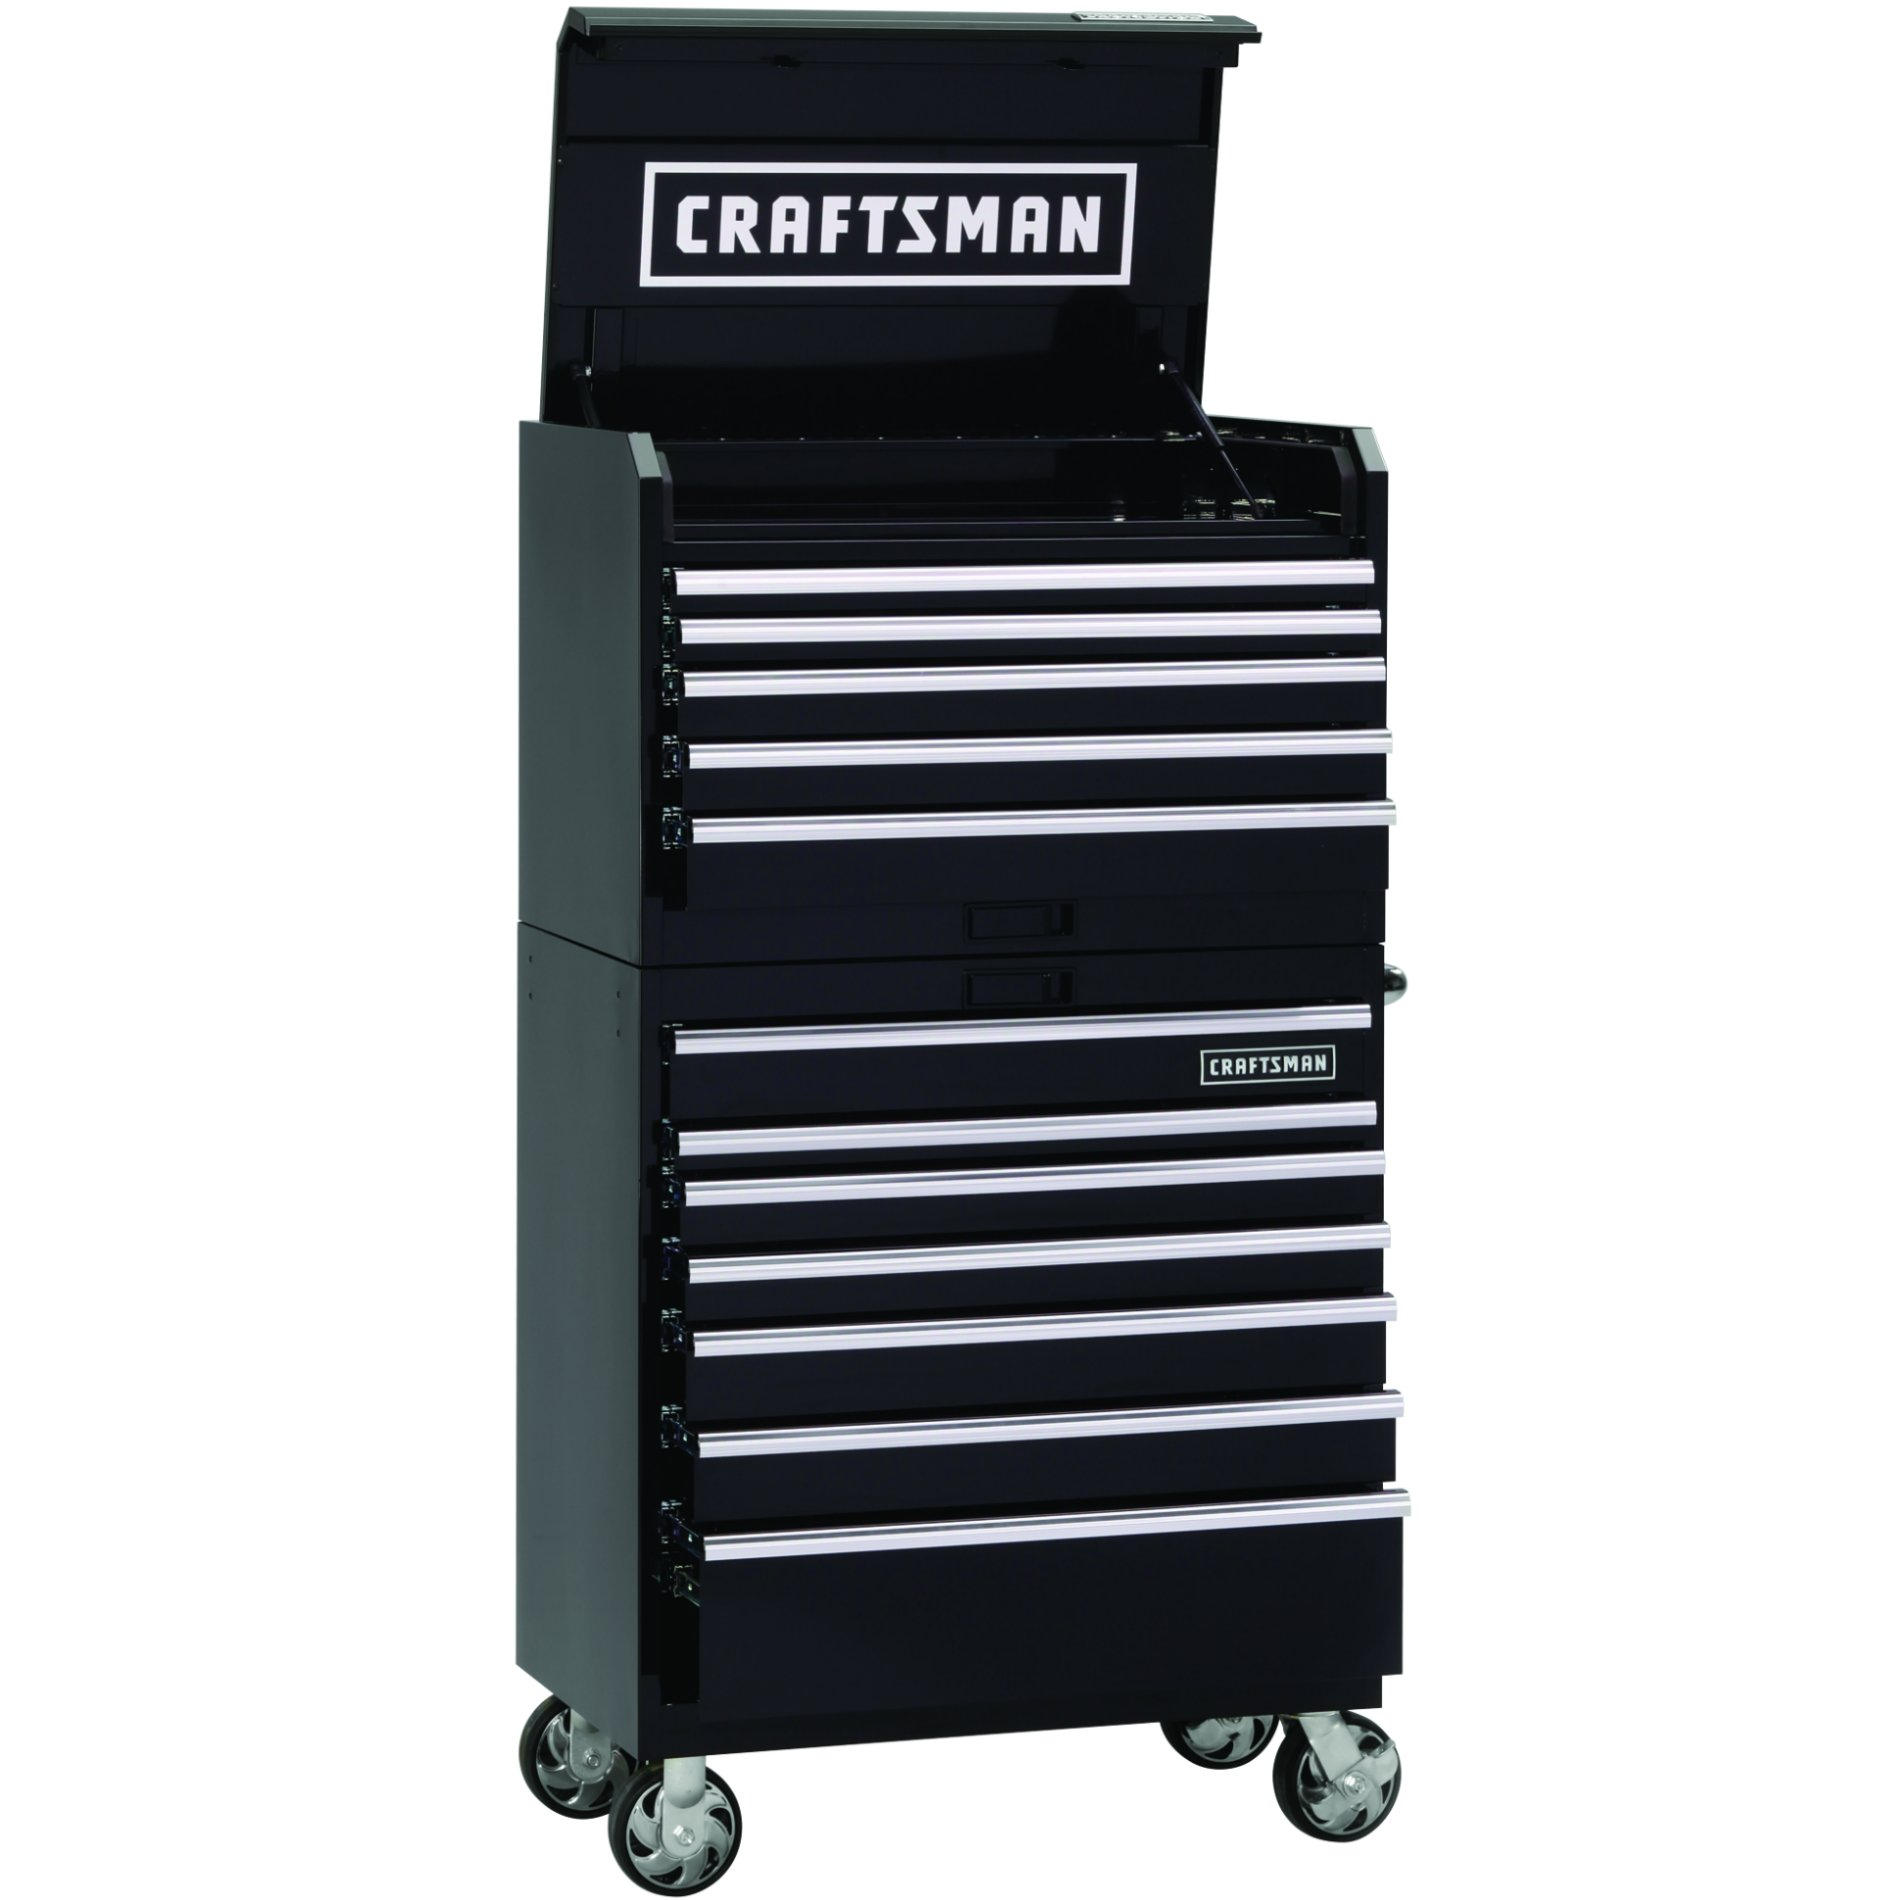 "Craftsman 36"" Wide 5-Drawer Industrial Grade Top Chest"